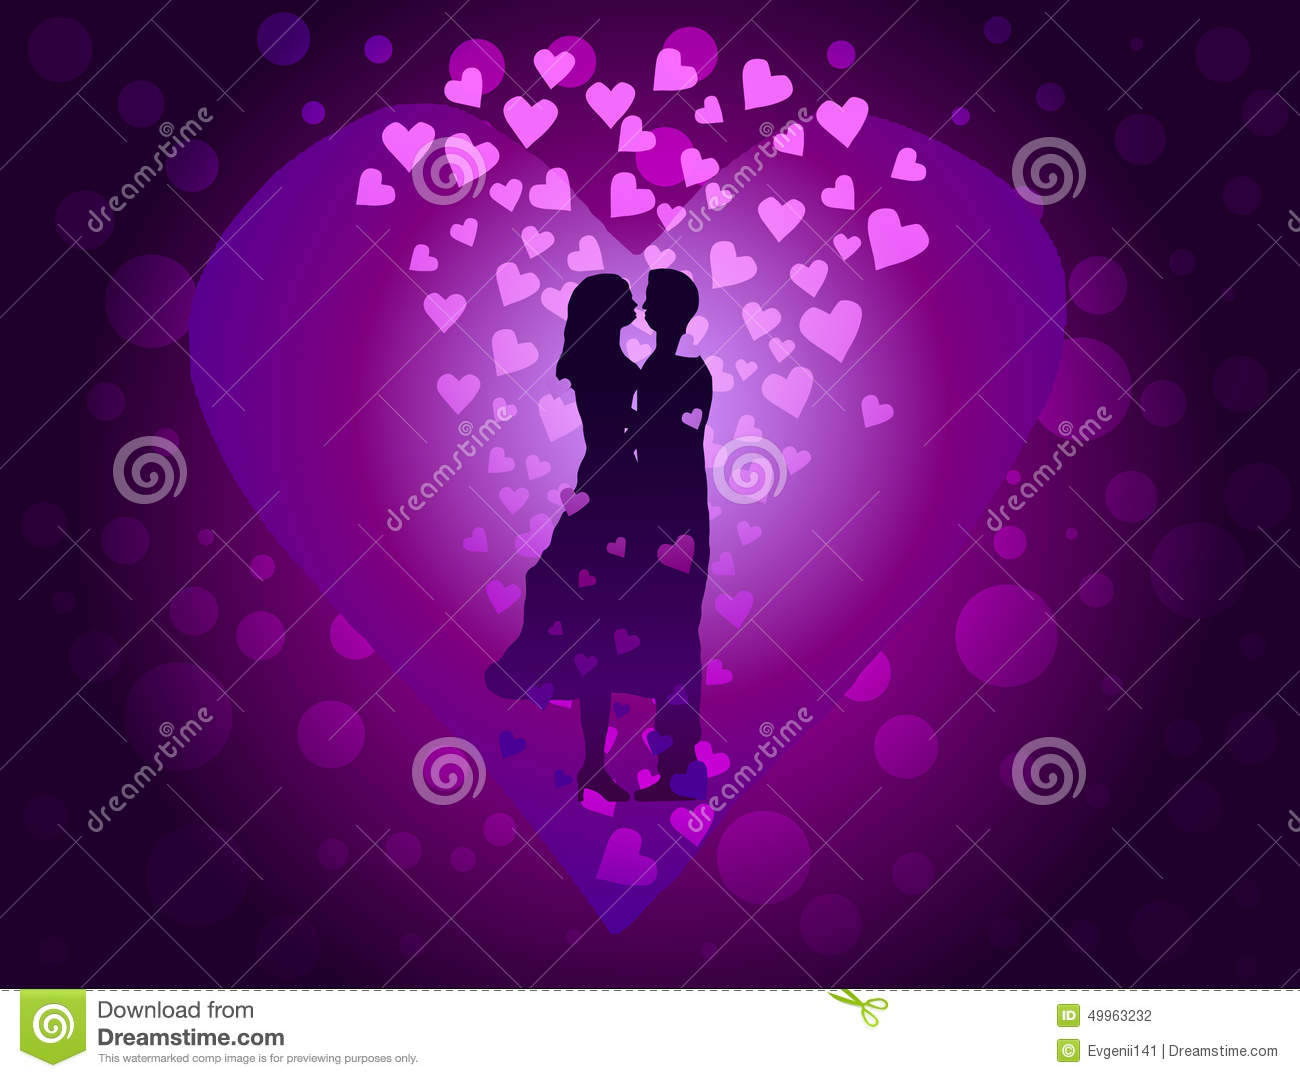 couple in love on purple background among the many hearts